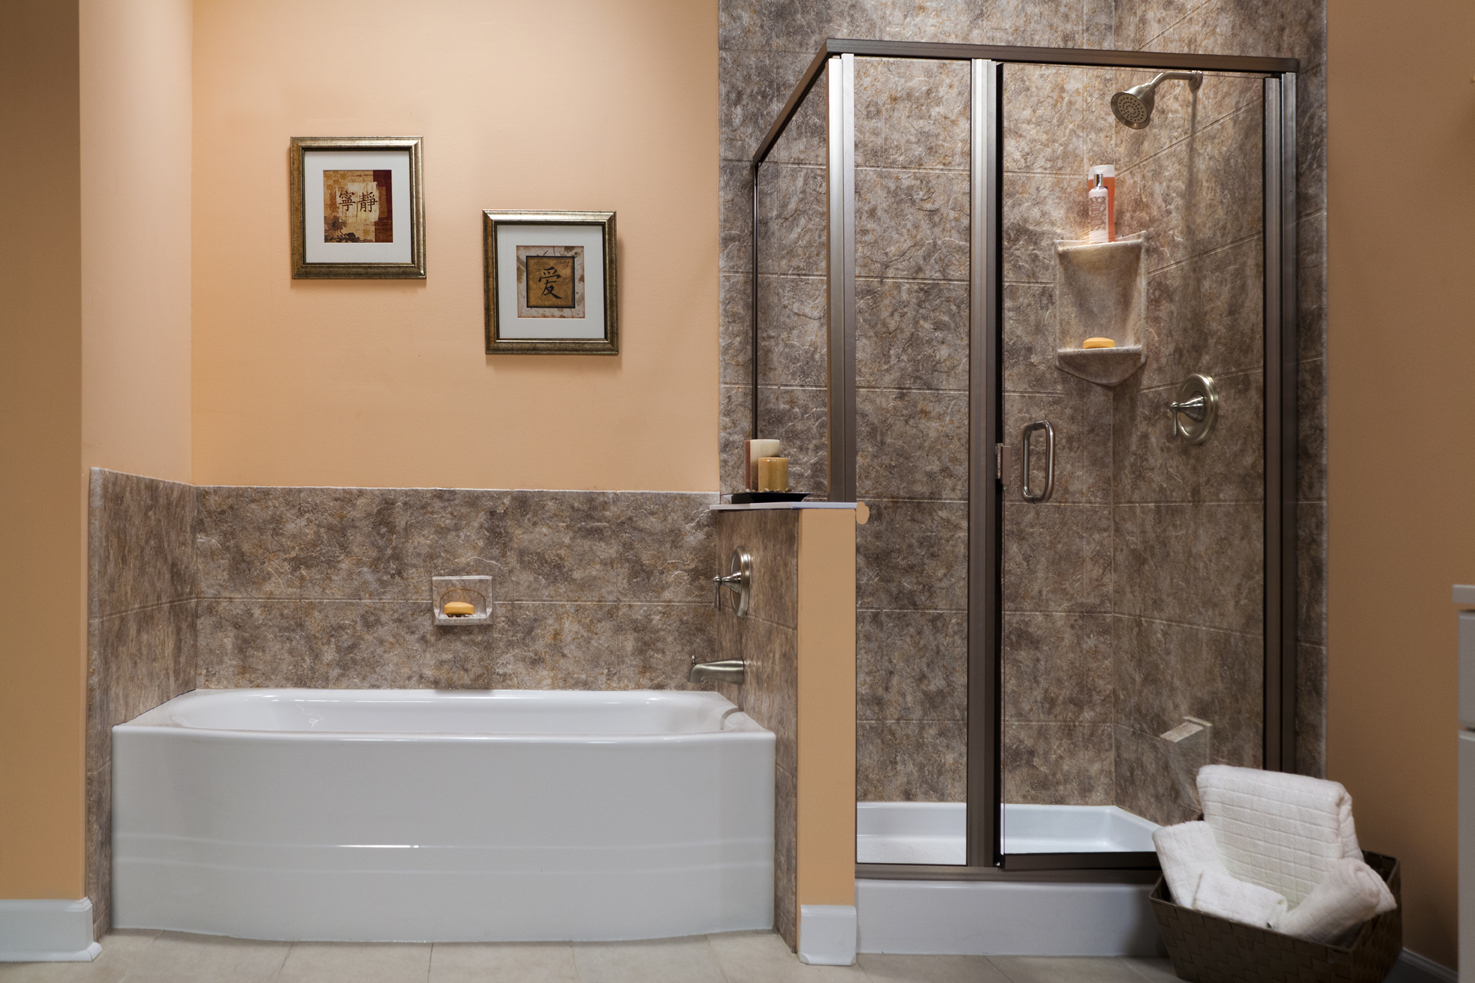 Sure Fit Bath Kitchen Premium Acrylic Seamed Seamless Wall pertaining to dimensions 1475 X 983